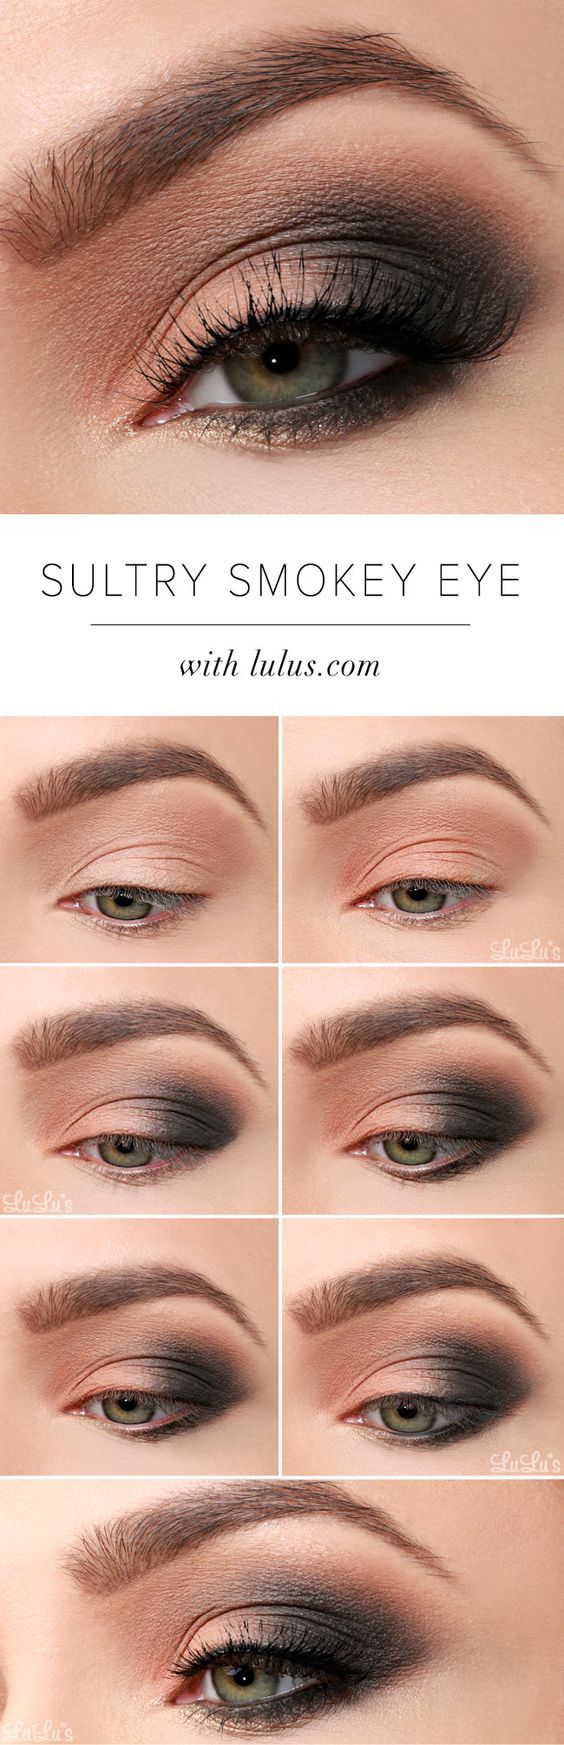 20 amazing eye makeup ideas for every occasion makeup ideas sexy eye makeup tutorials sultry smokey eye makeup tutorial easy guides on how to do smokey looks and look like one of the linda hallberg bombshells baditri Choice Image